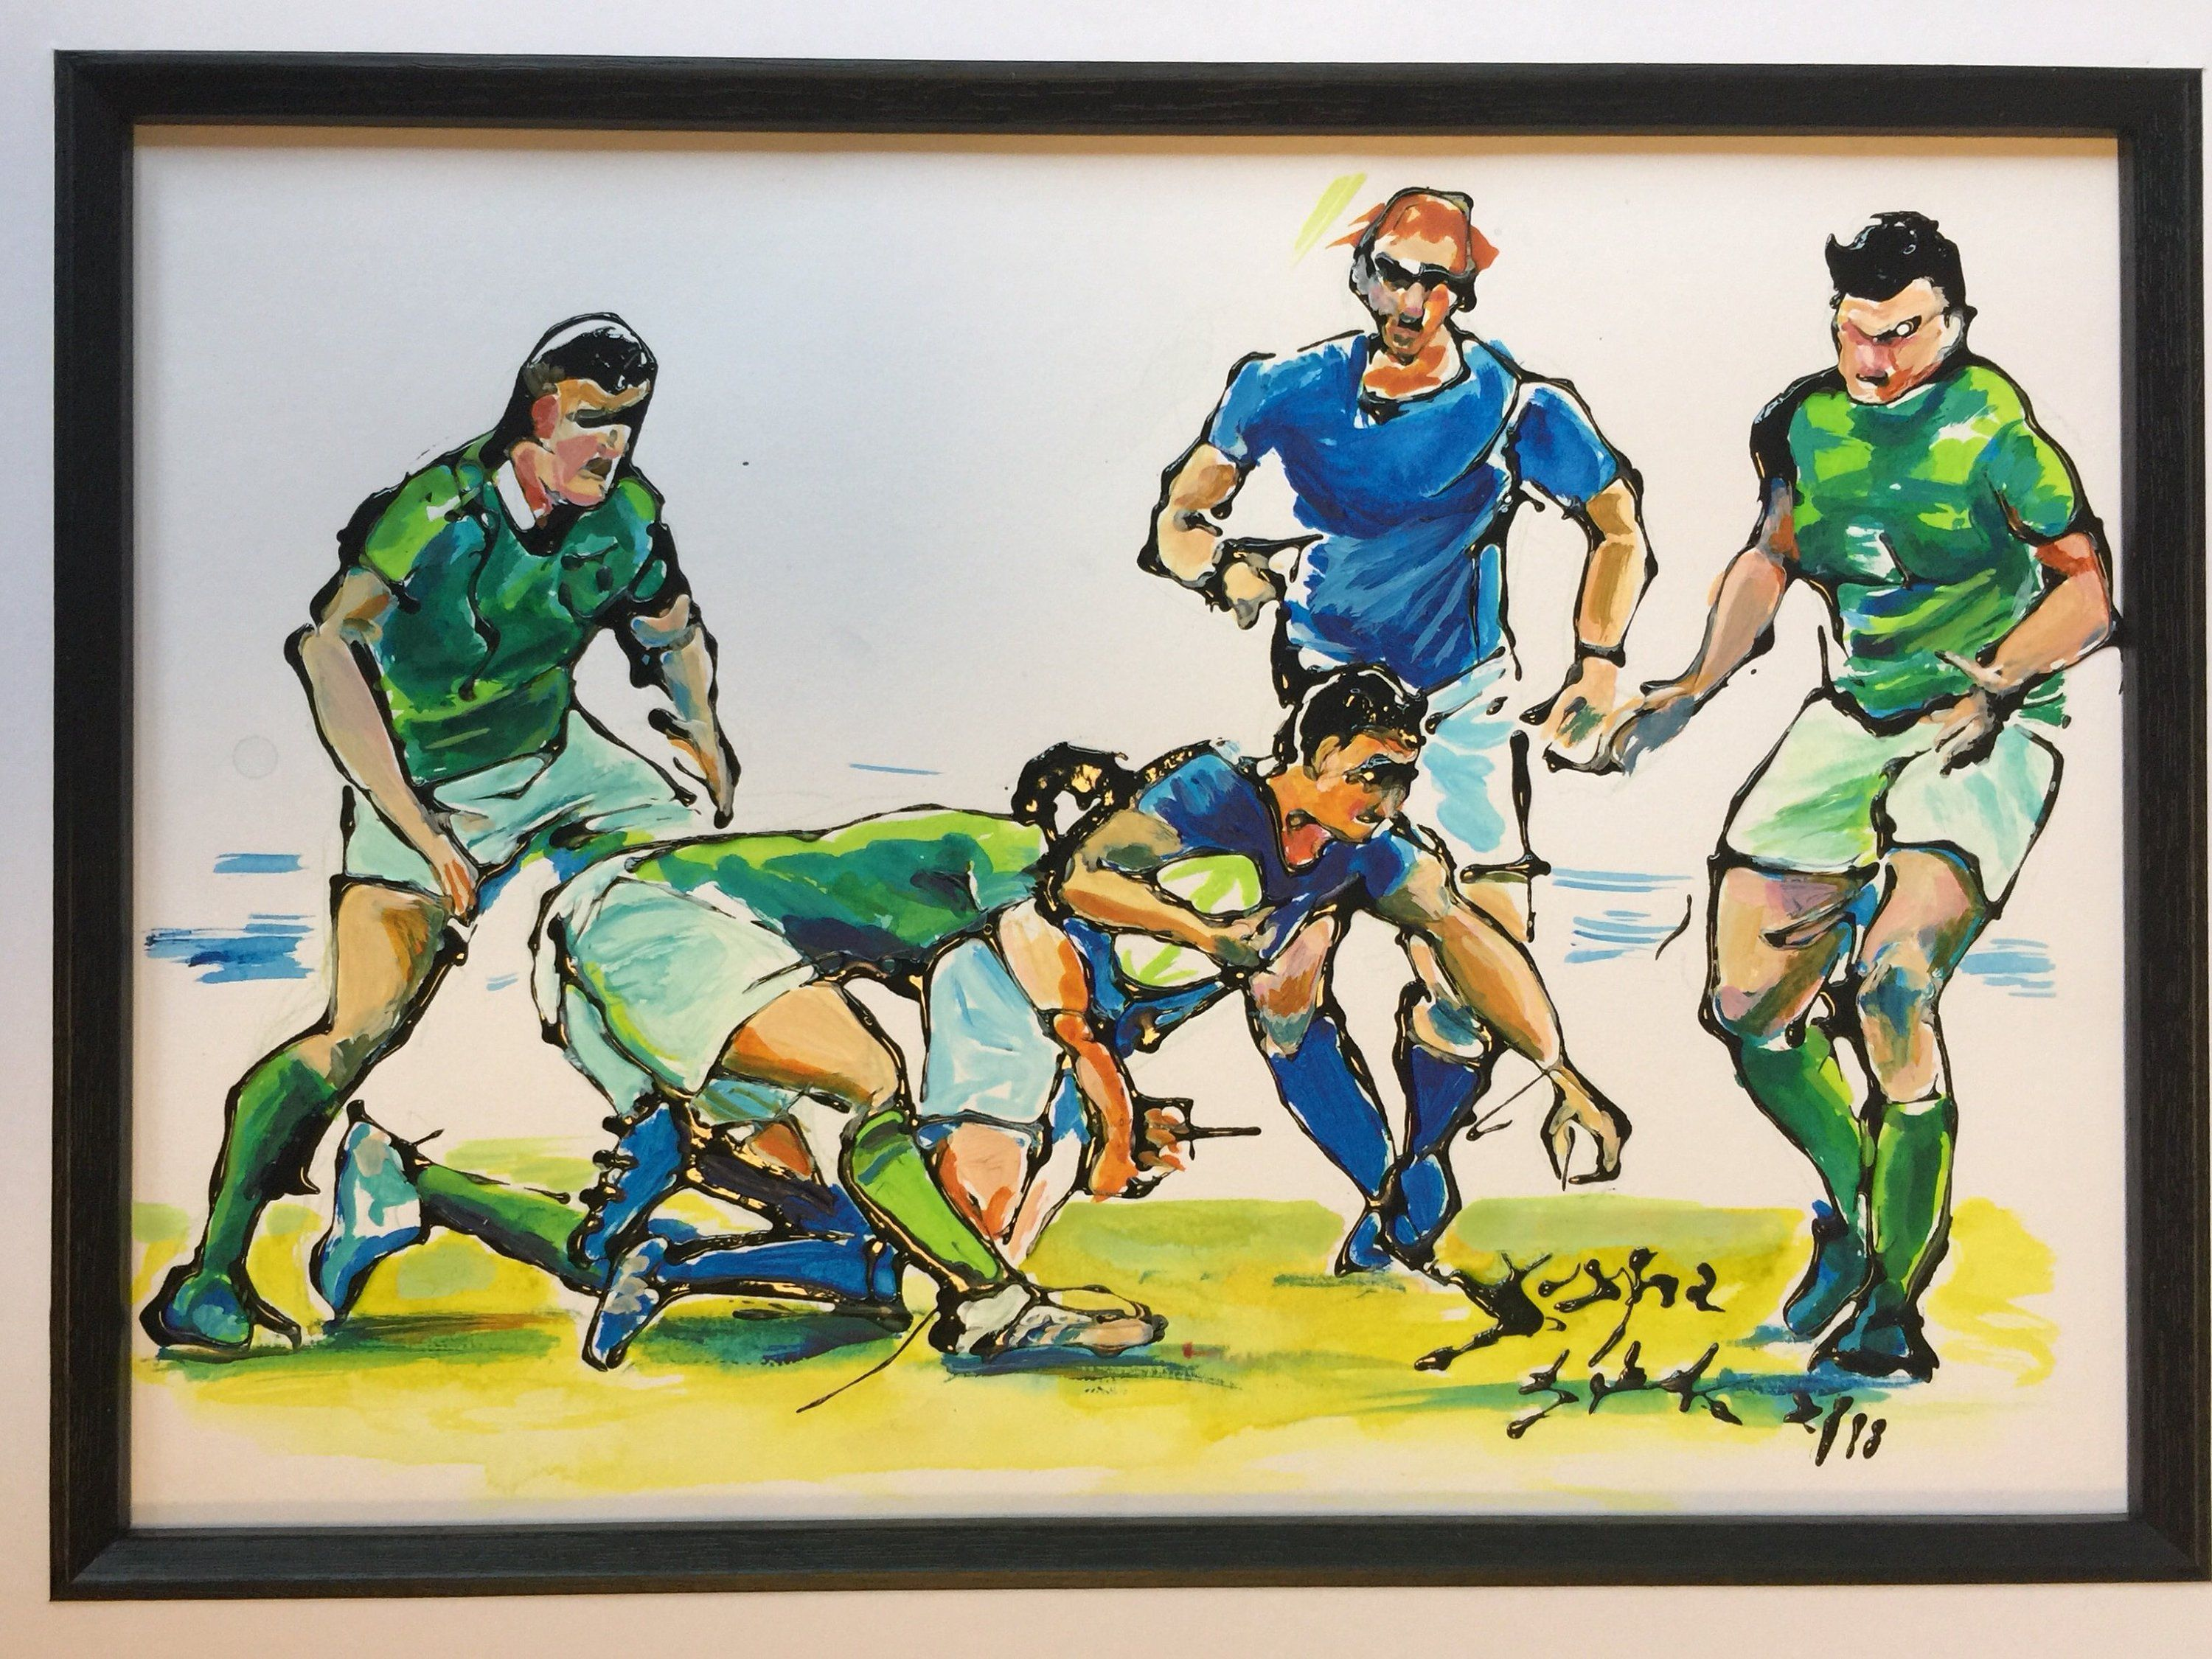 Rugby Original Artwork Rugby Original Picture Rugby Original Painting Rugby Wall Art Rugby Picture Rugby Gift Gift For Rugby Fan Rugby Pictures Rugby Art Rugby Gifts